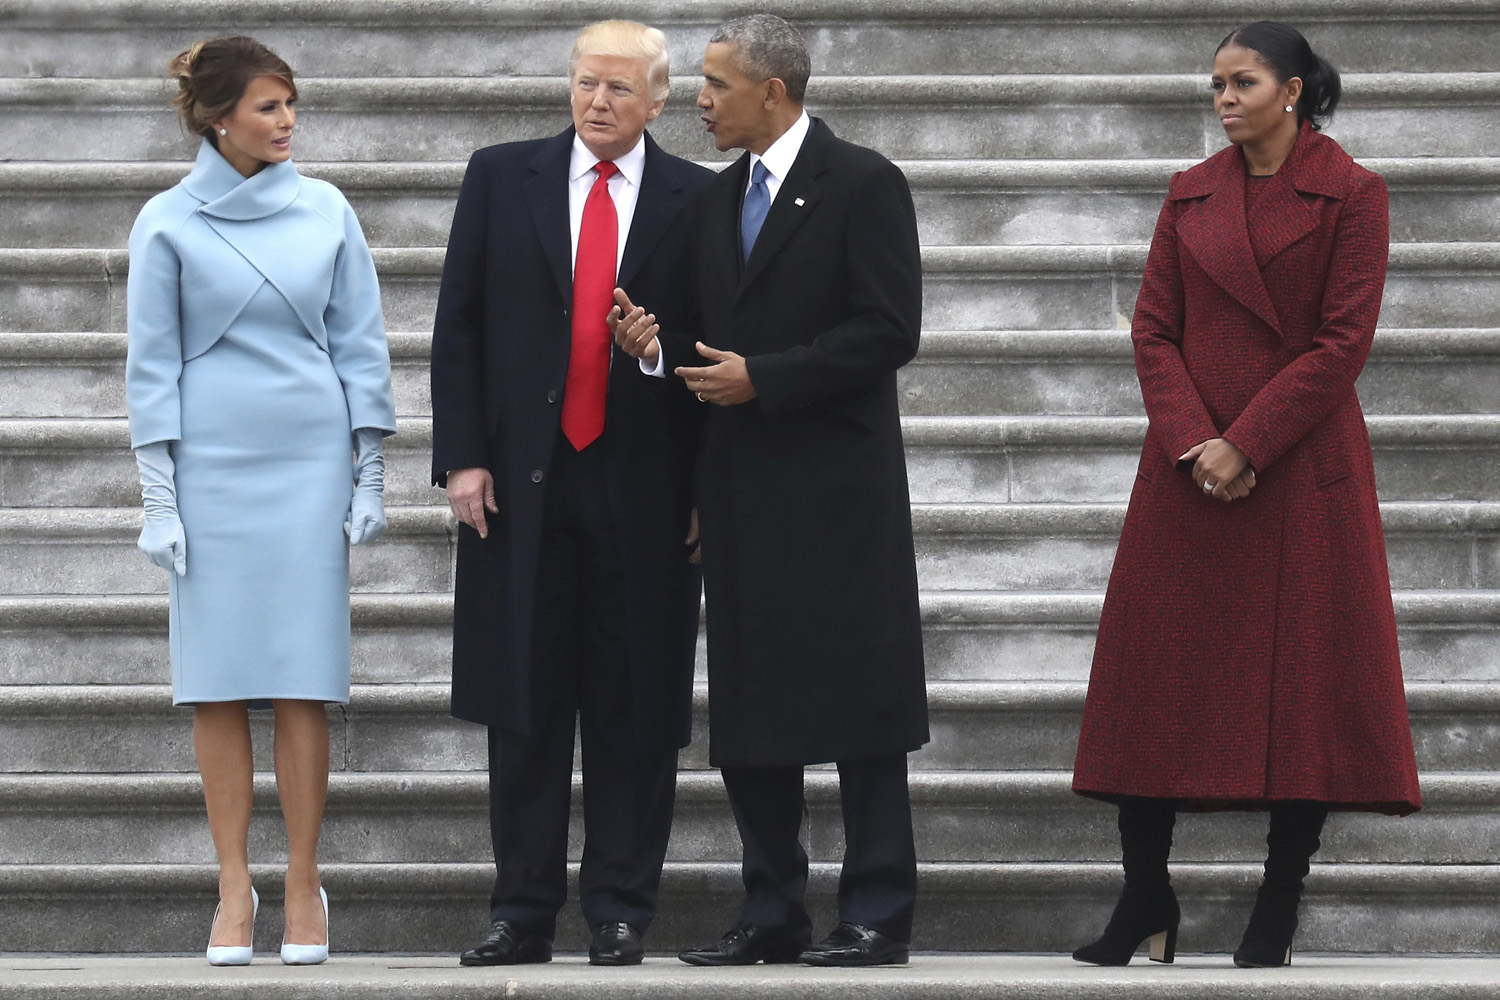 WASHINGTON, DC - JANUARY 20: President Donald Trump and former president Barack Obama stand on the steps of the U.S. Capitol with First Lady Melania Trump and Michelle Obamal on January 20, 2017 in Washington, DC. In today's inauguration ceremony Donald J. Trump becomes the 45th president of the United States. (Photo by Rob Carr/Getty Images)